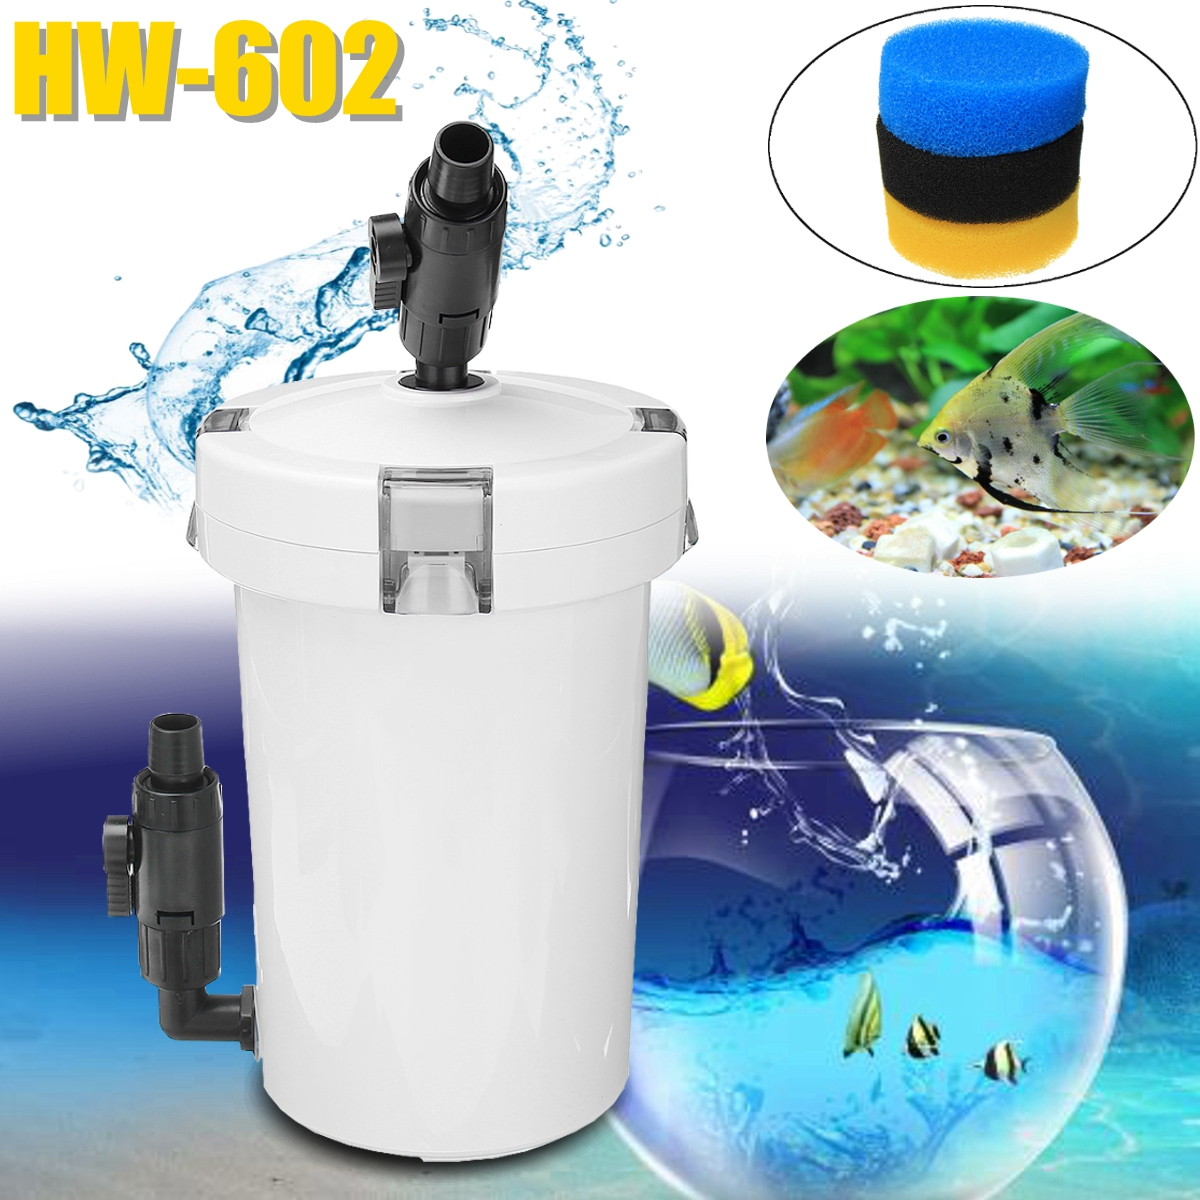 SUNSUN HW-602 220V External Canister Filter Aquarium Fish Tank Water Filter